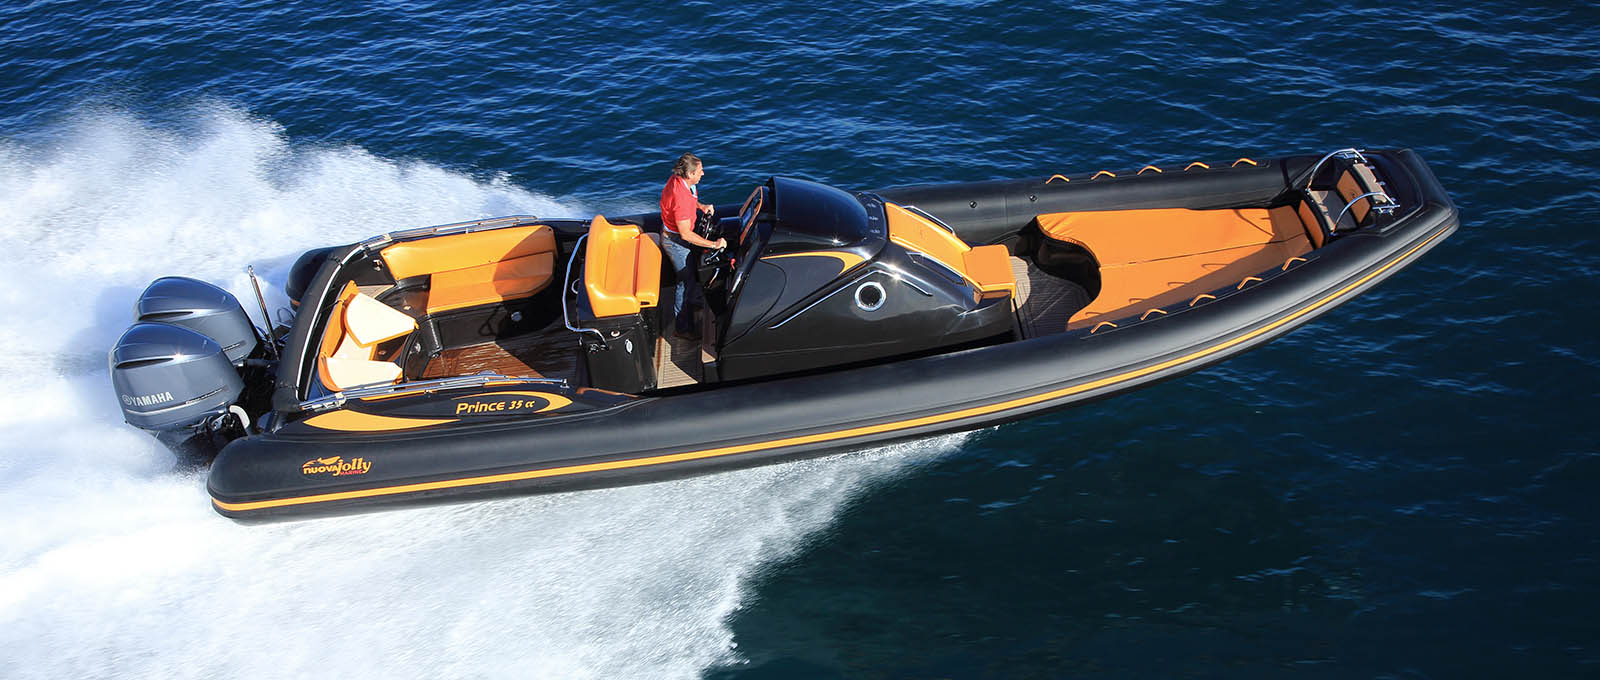 Nuova Jolly Rigid inflatable Prince 35 CC Orange Starboard